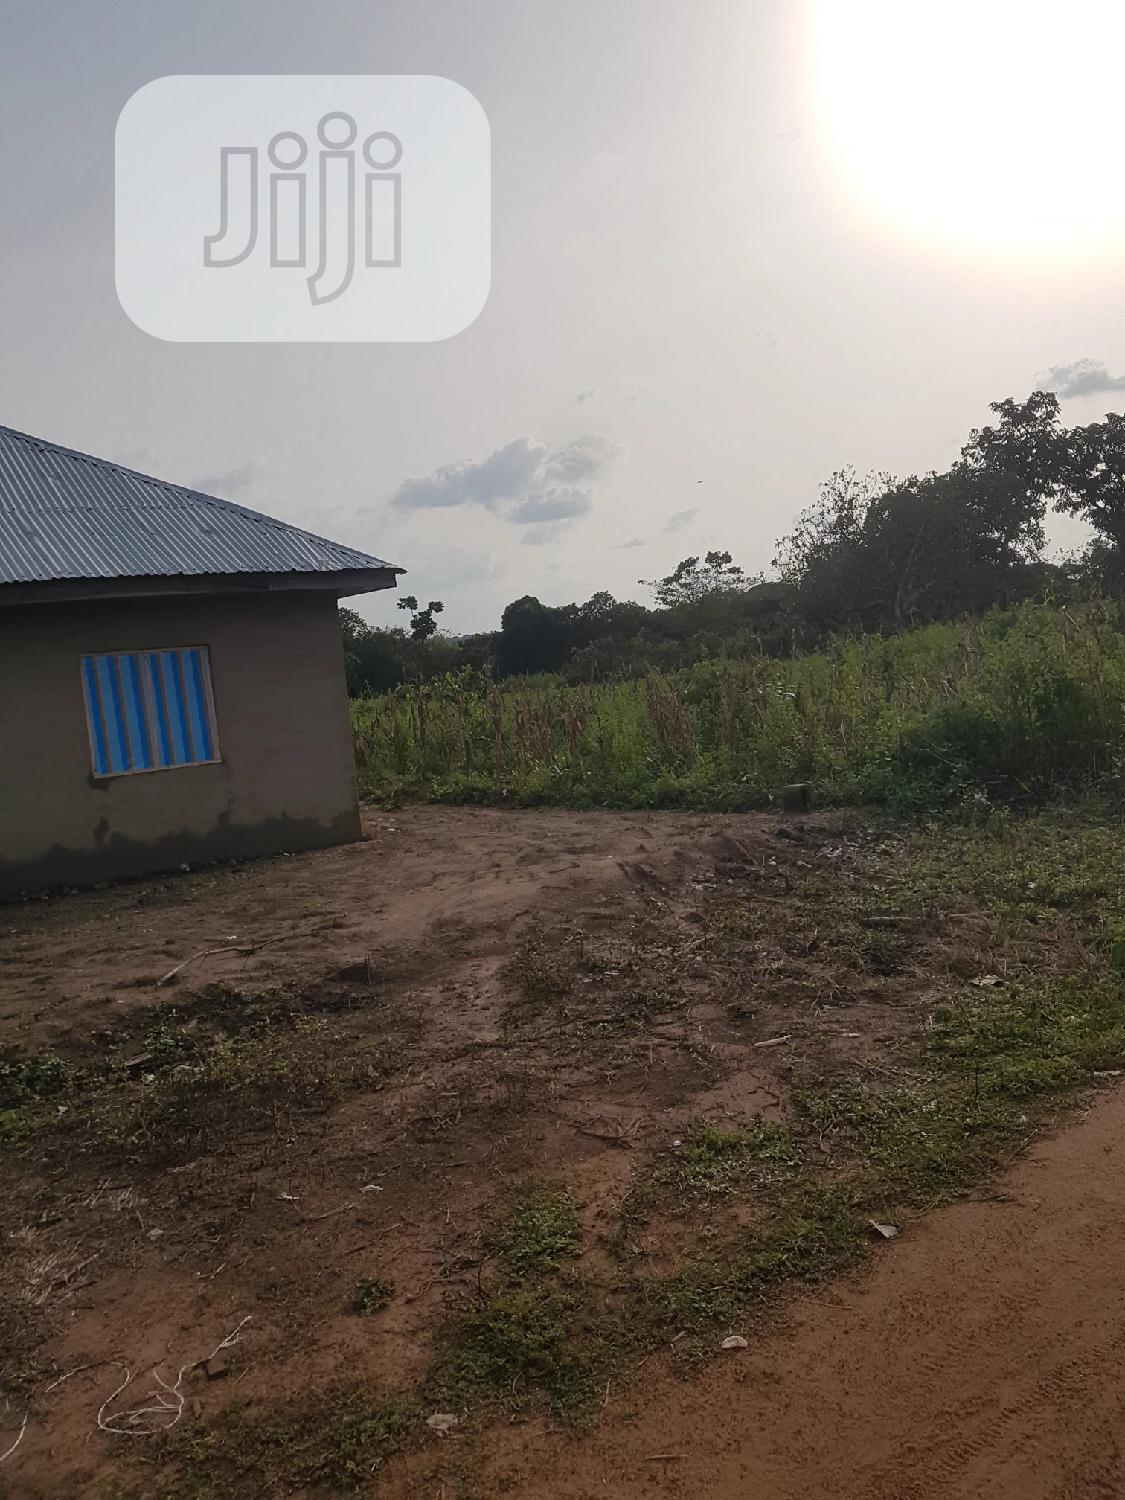 Archive: Residential Land for Sale at Ogbomoso, Oyo State